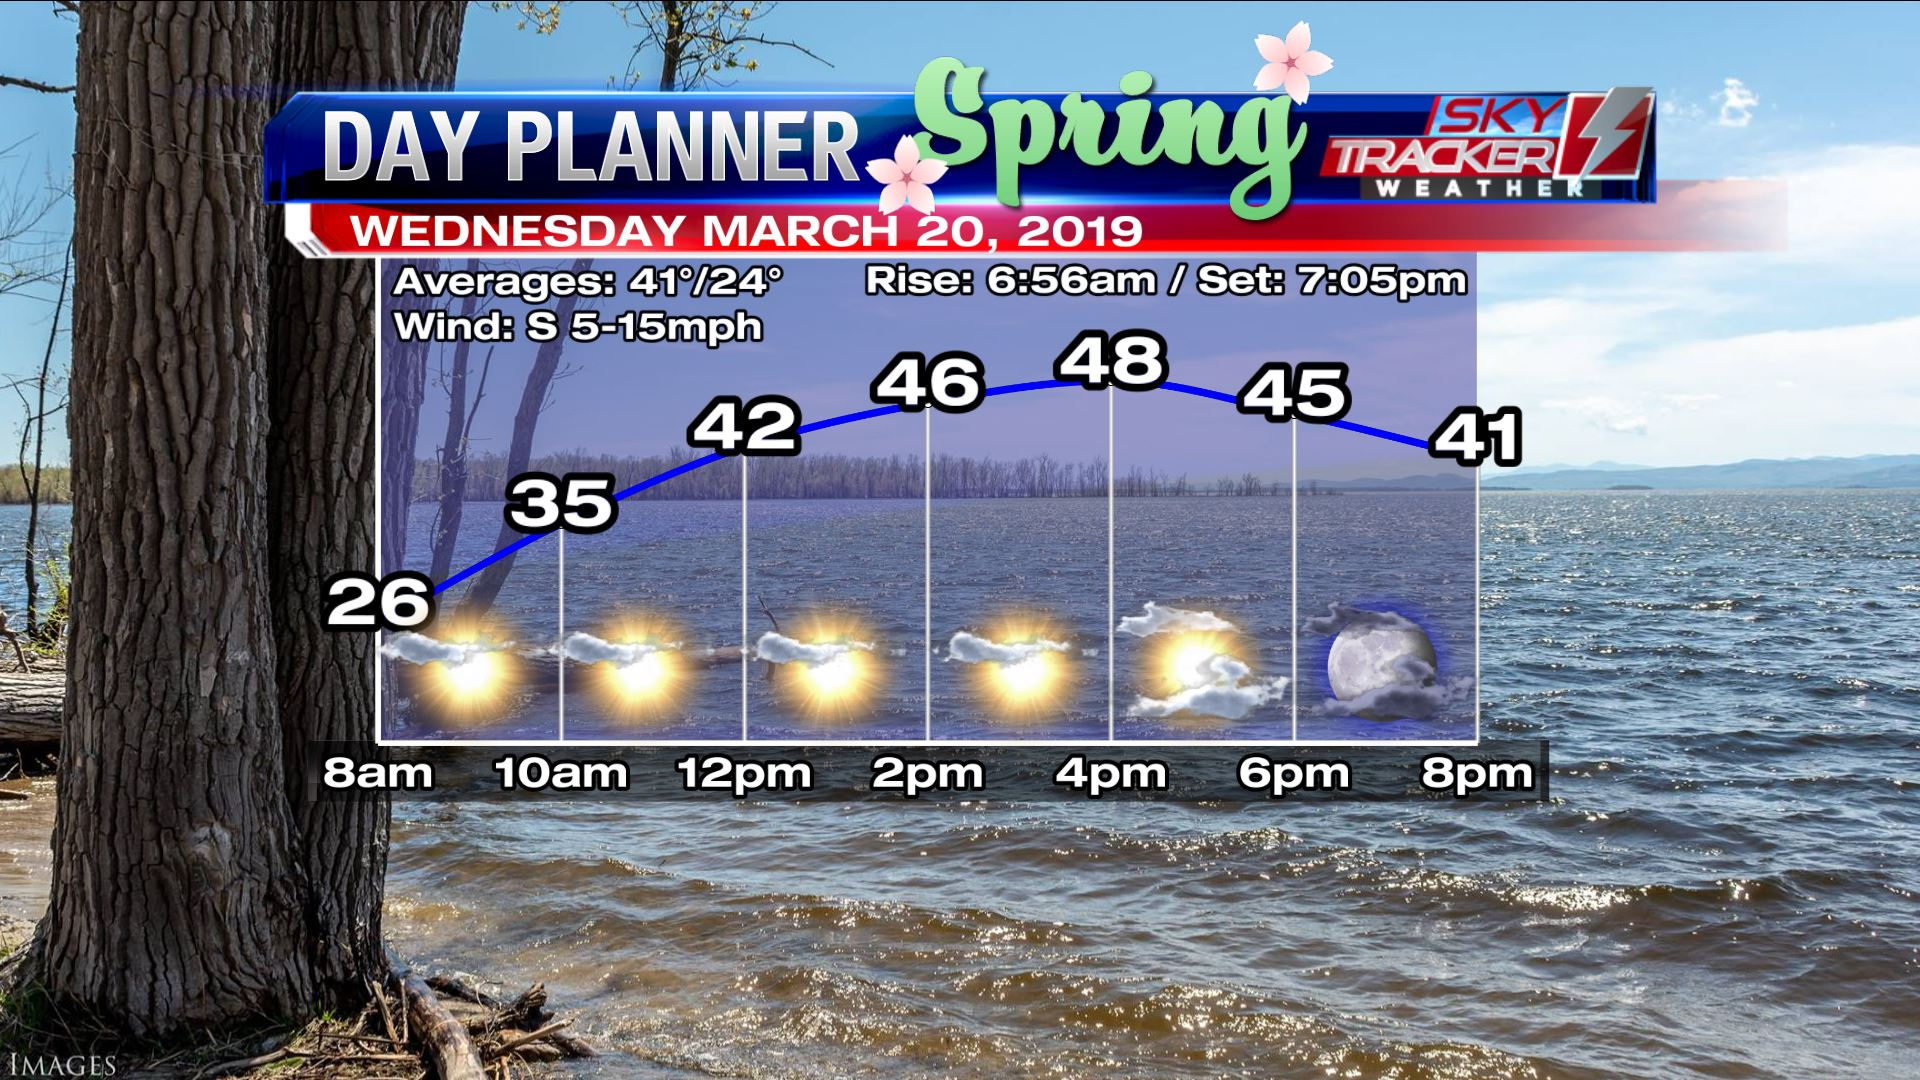 Planner for Wednesday March 20 2019